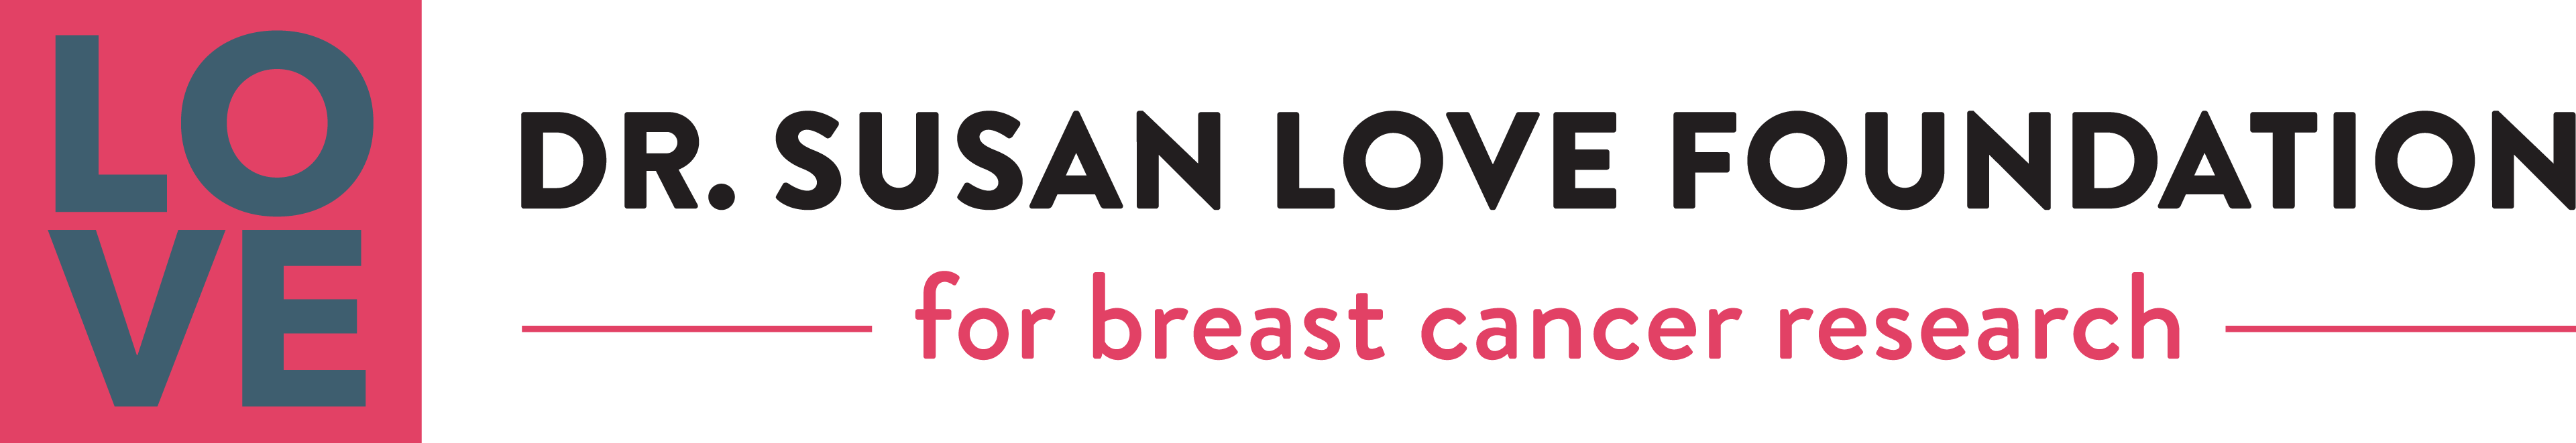 Dr Susan Love Foundation for Breast Cancer Research